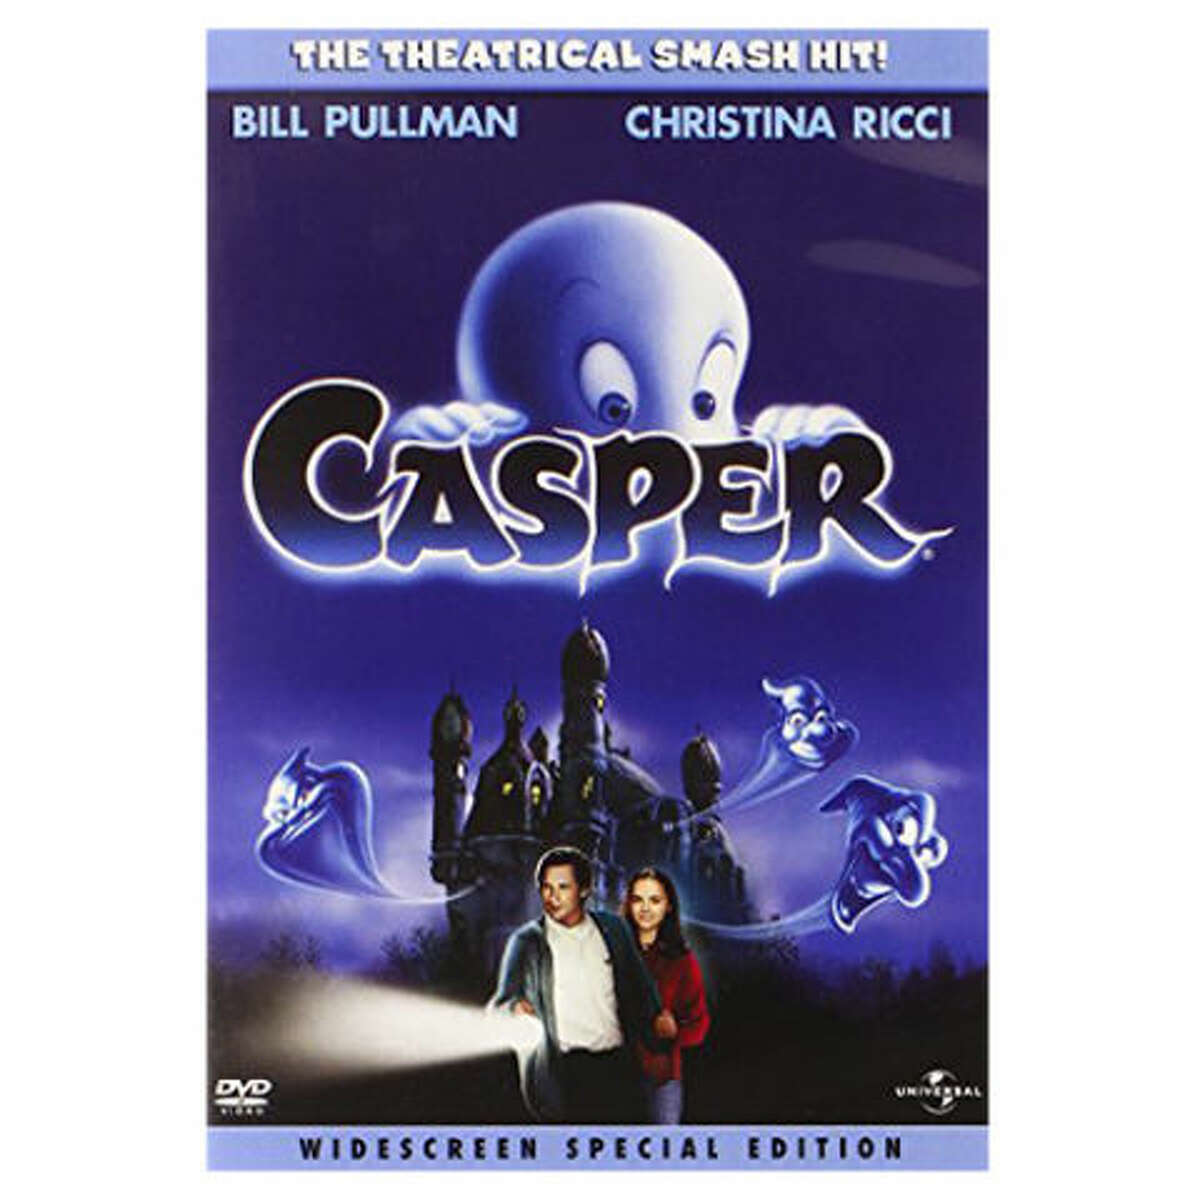 Casper (1995)Leaving Netflix May 1A paranormal expert and his daughter bunk in an abandoned house populated by three mischievous ghosts and one friendly one.